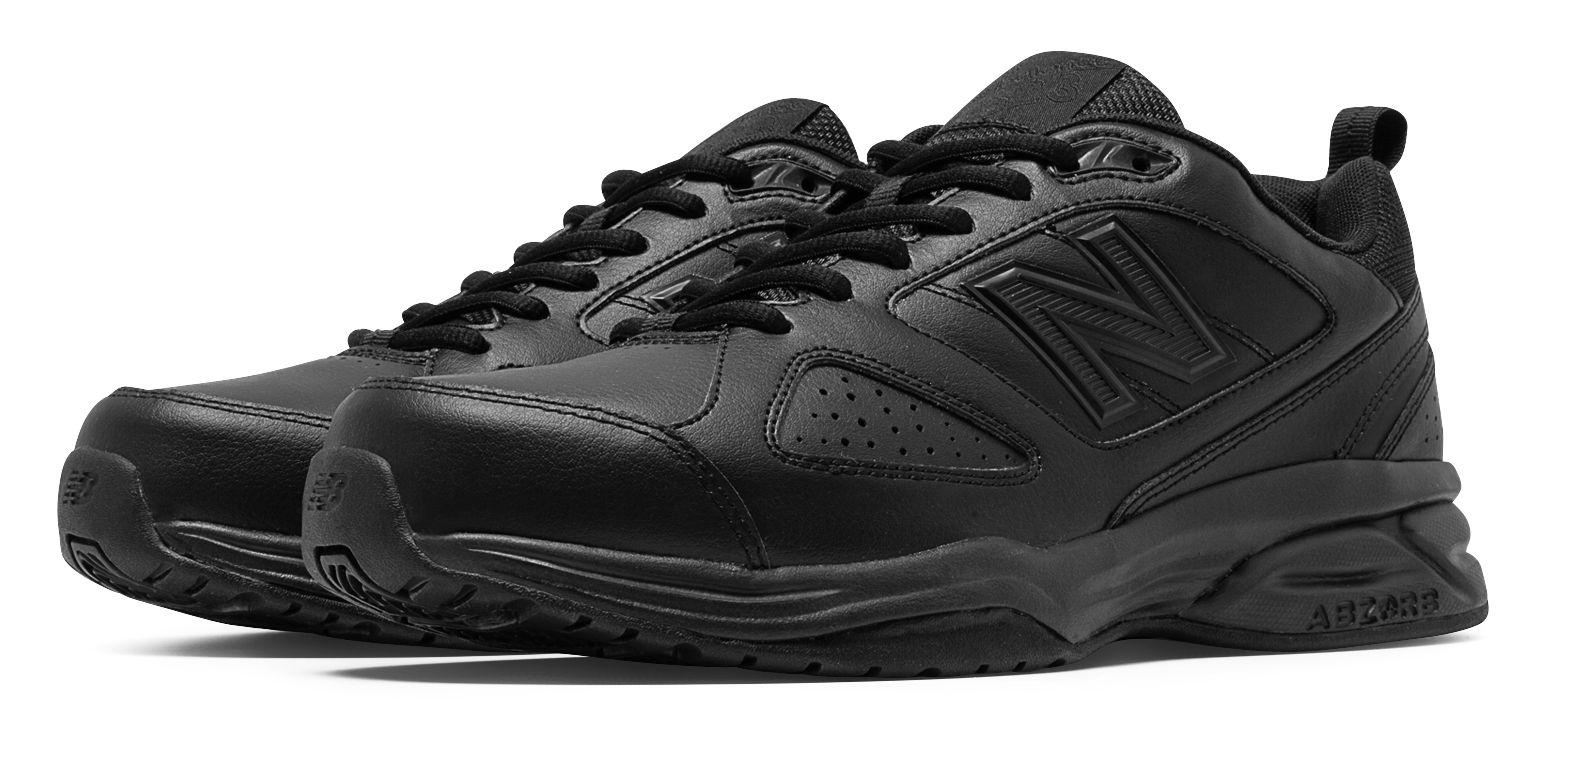 765c3d48e2dc4 ... UPC 889516120507 product image for New Balance Men's 623v3 Trainer  Shoes Black | upcitemdb.com